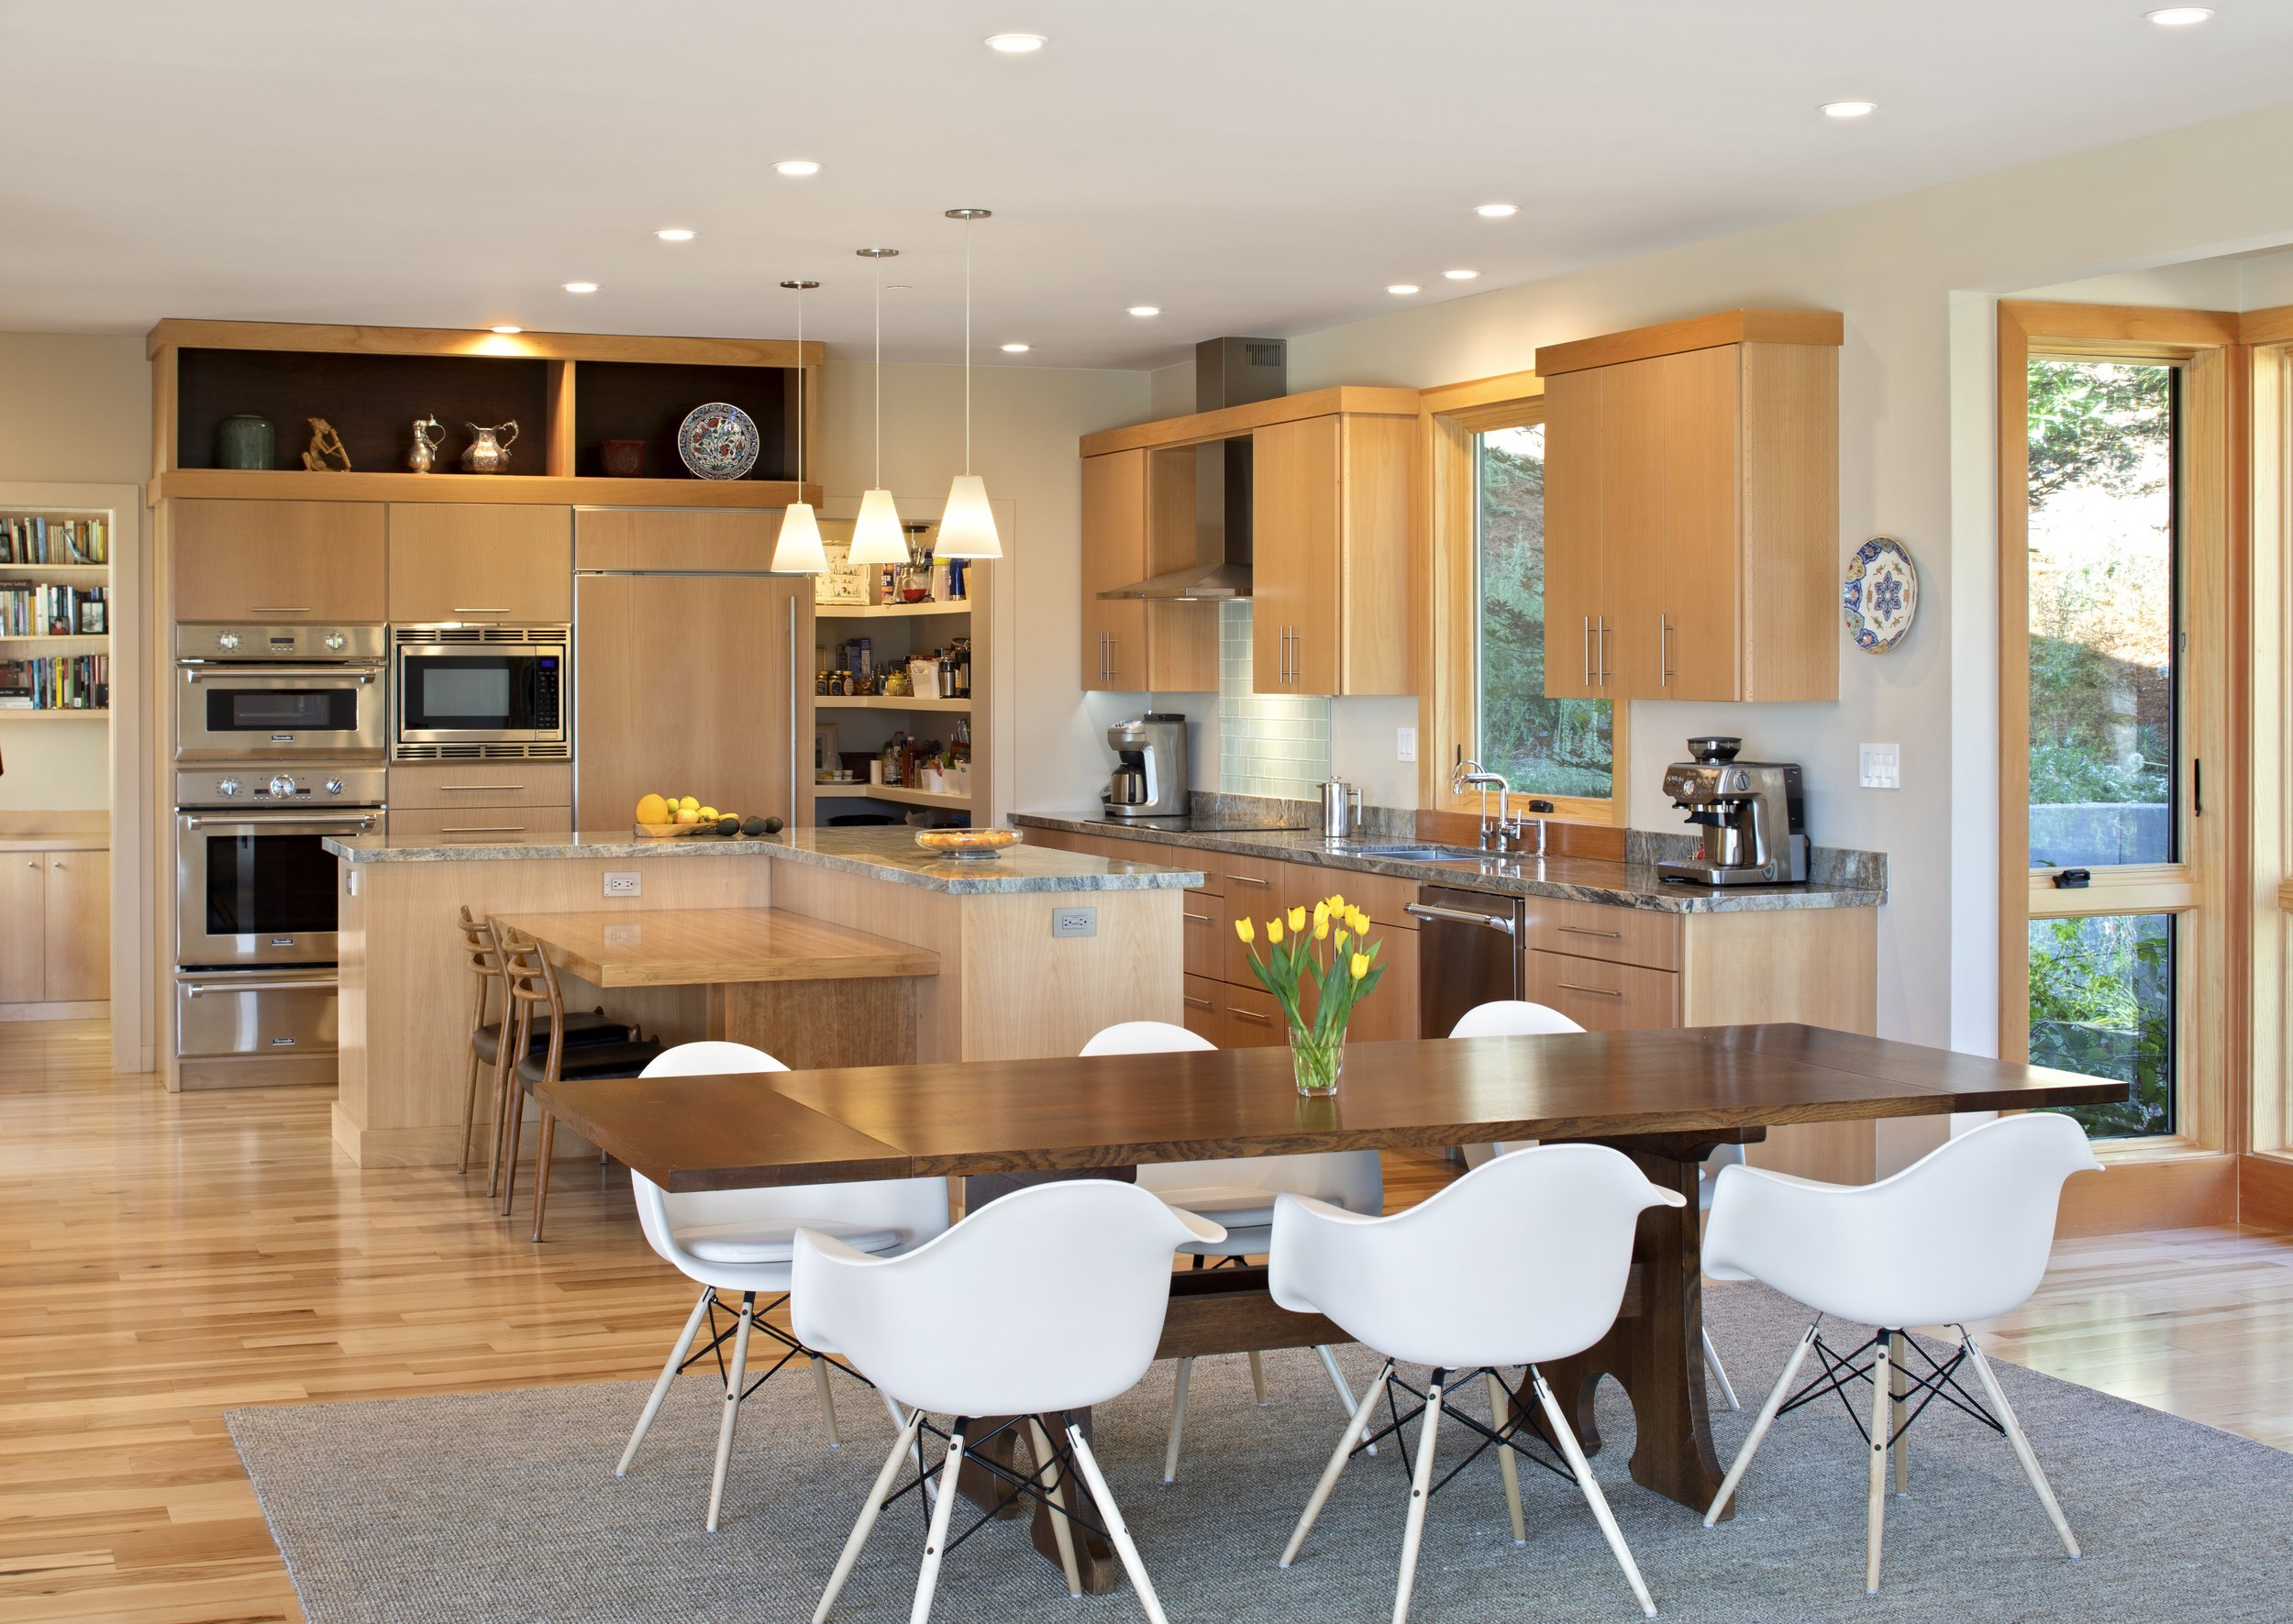 Debell Kitchen copy.jpg